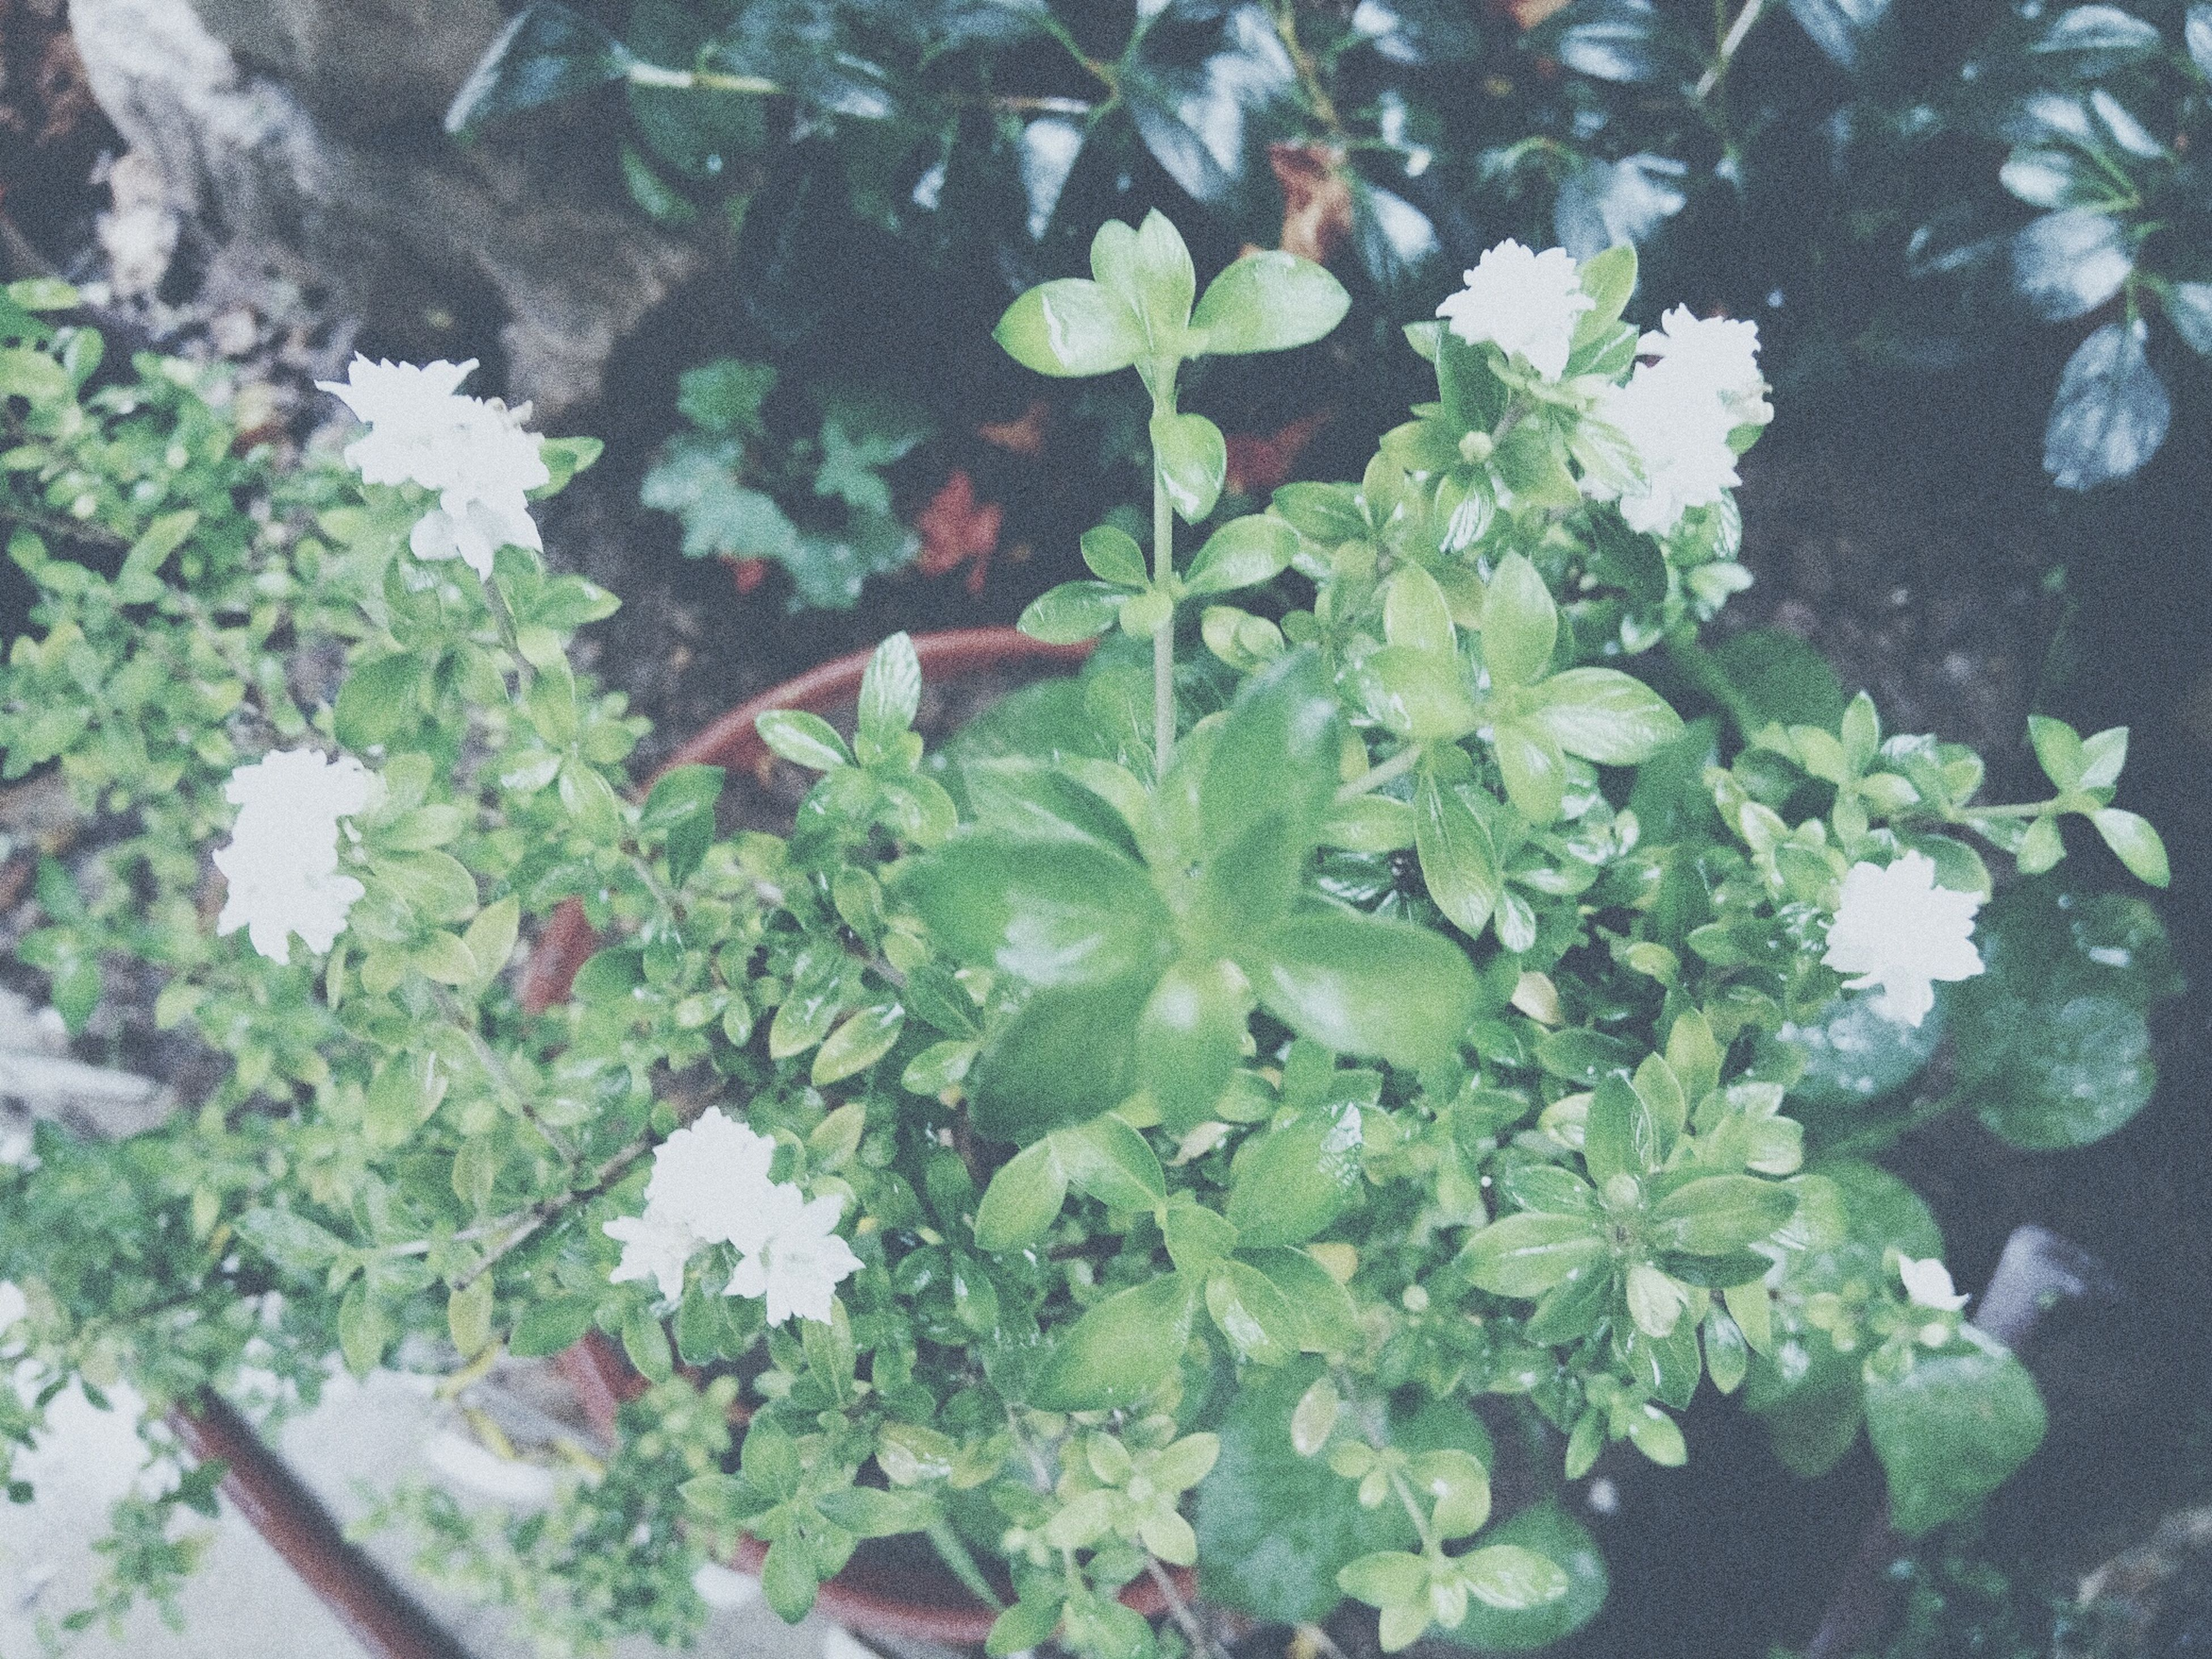 growth, leaf, plant, green color, nature, freshness, flower, growing, beauty in nature, fragility, close-up, day, outdoors, no people, botany, tranquility, blooming, stem, green, in bloom